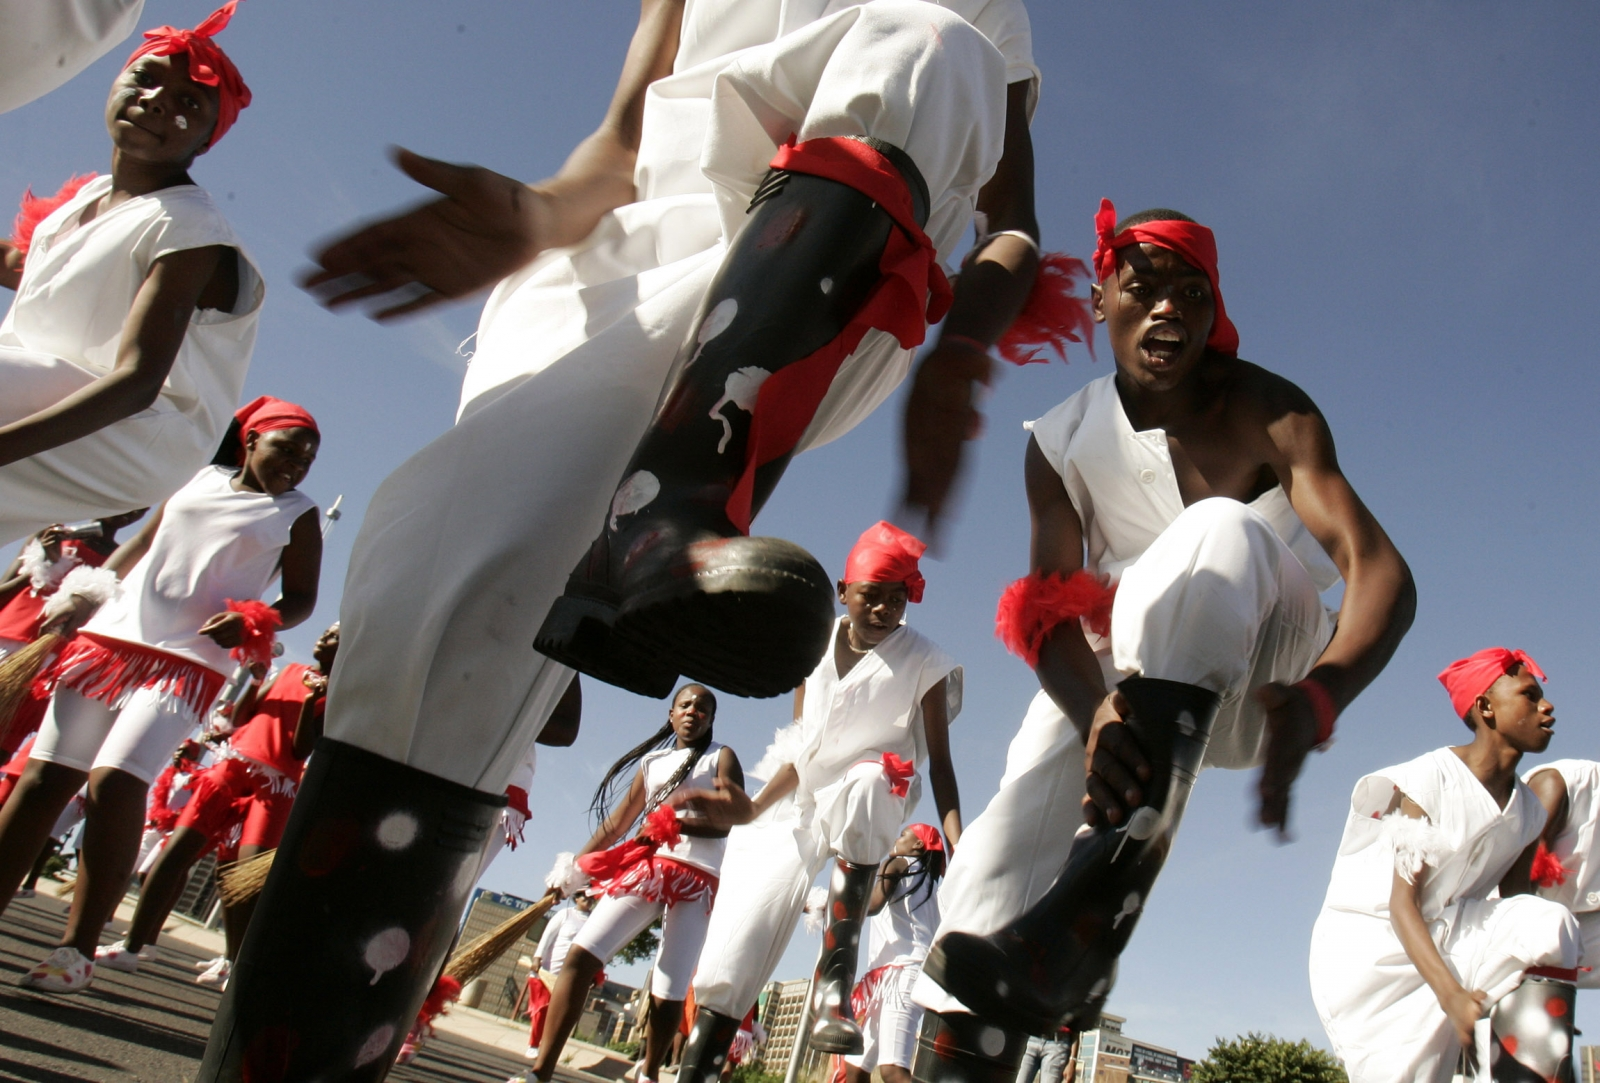 Gumboot dancers South Africa